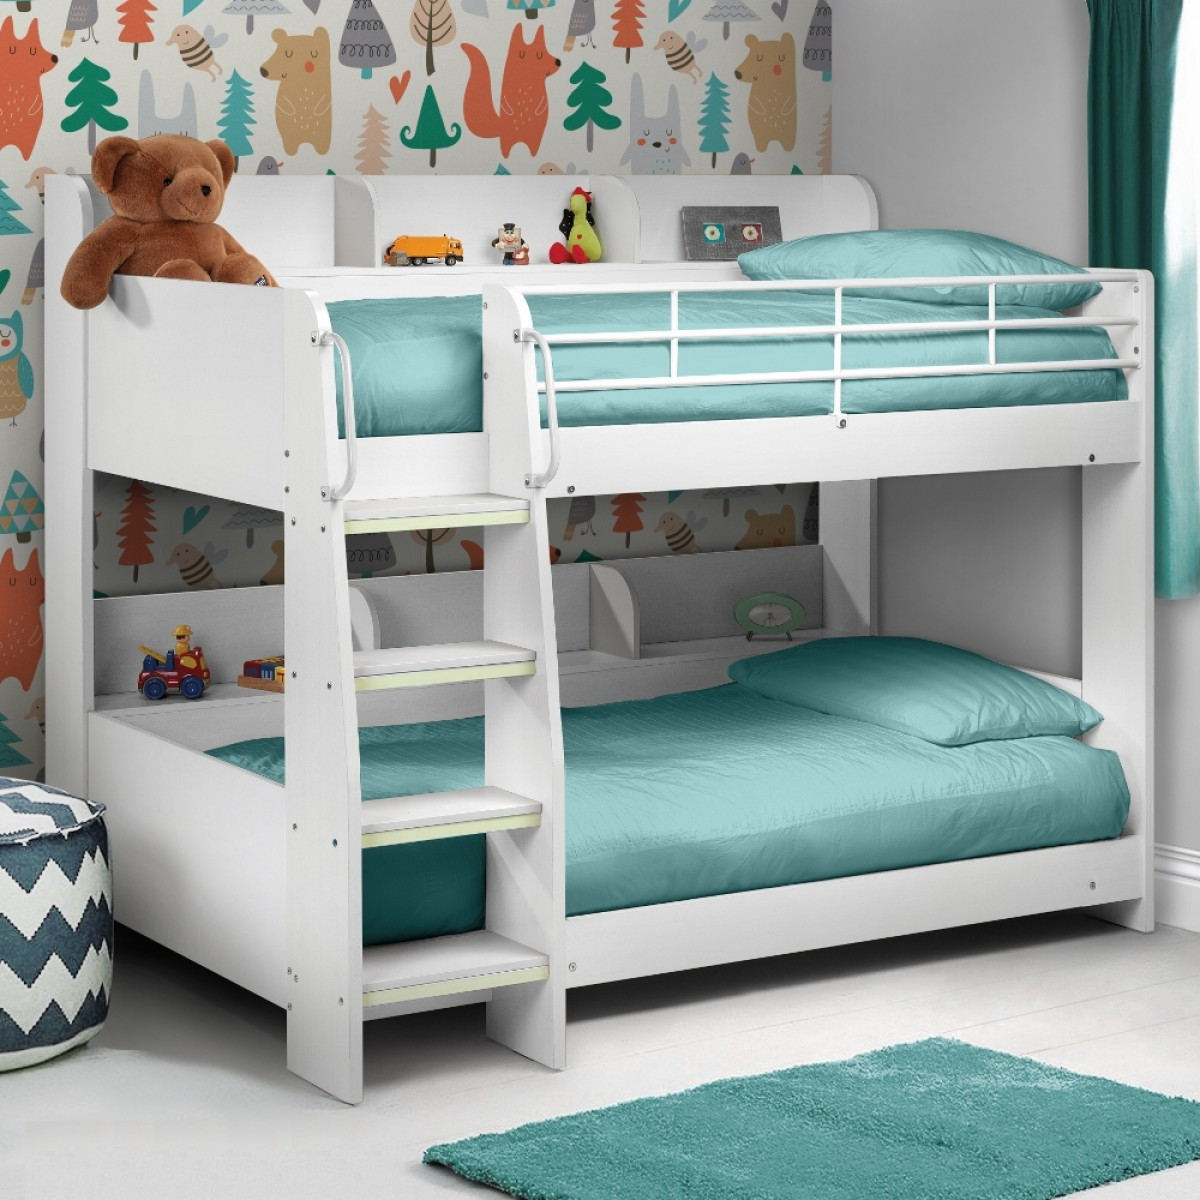 julian bowen domino white wooden kids bunk bed. Black Bedroom Furniture Sets. Home Design Ideas